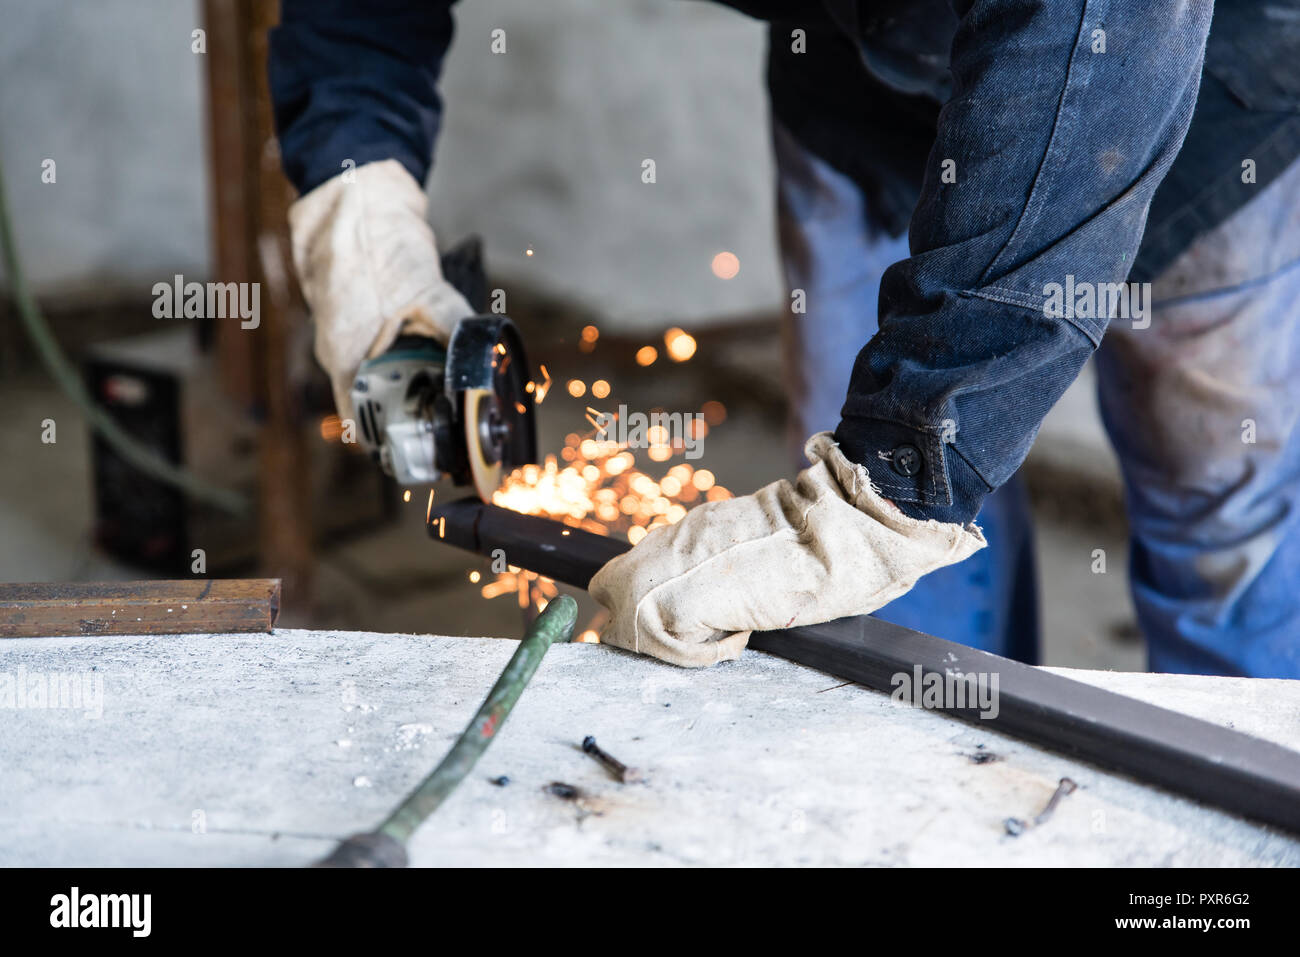 Work at home workshop. Man cuts the metal profile with electric angle grinder, skills and abilities - Stock Image